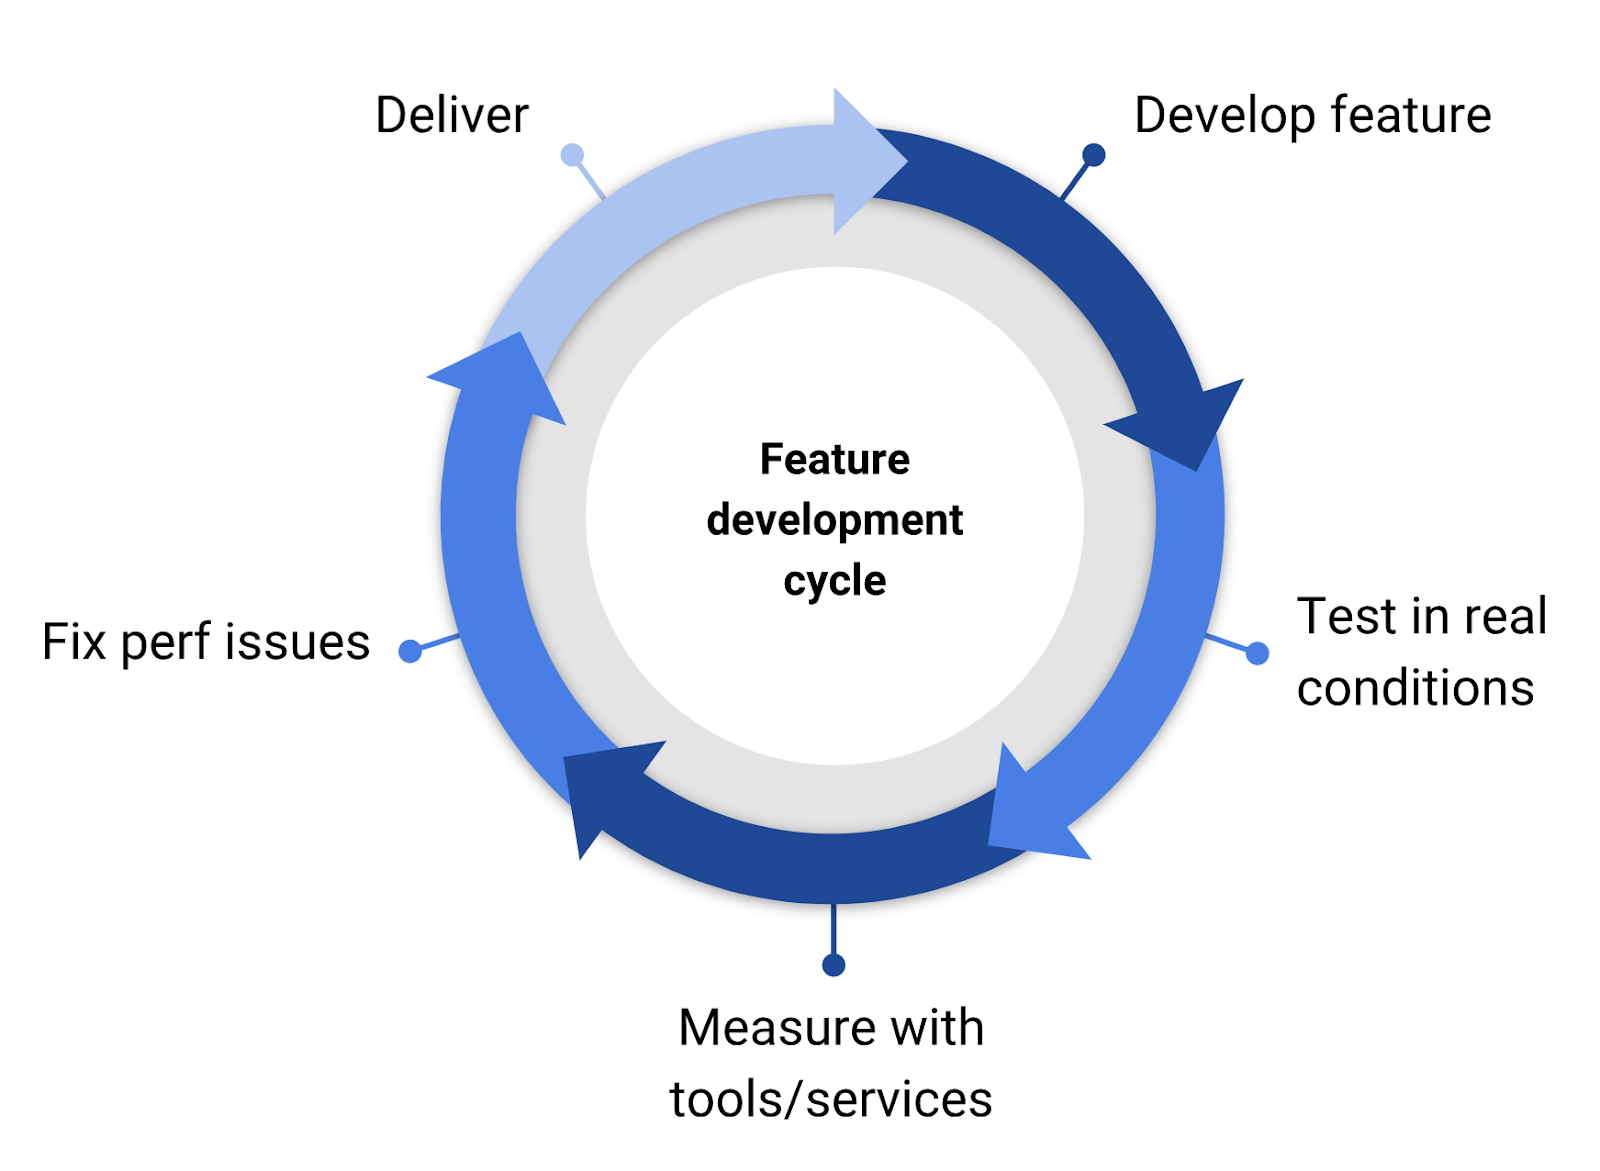 Feature development cycle